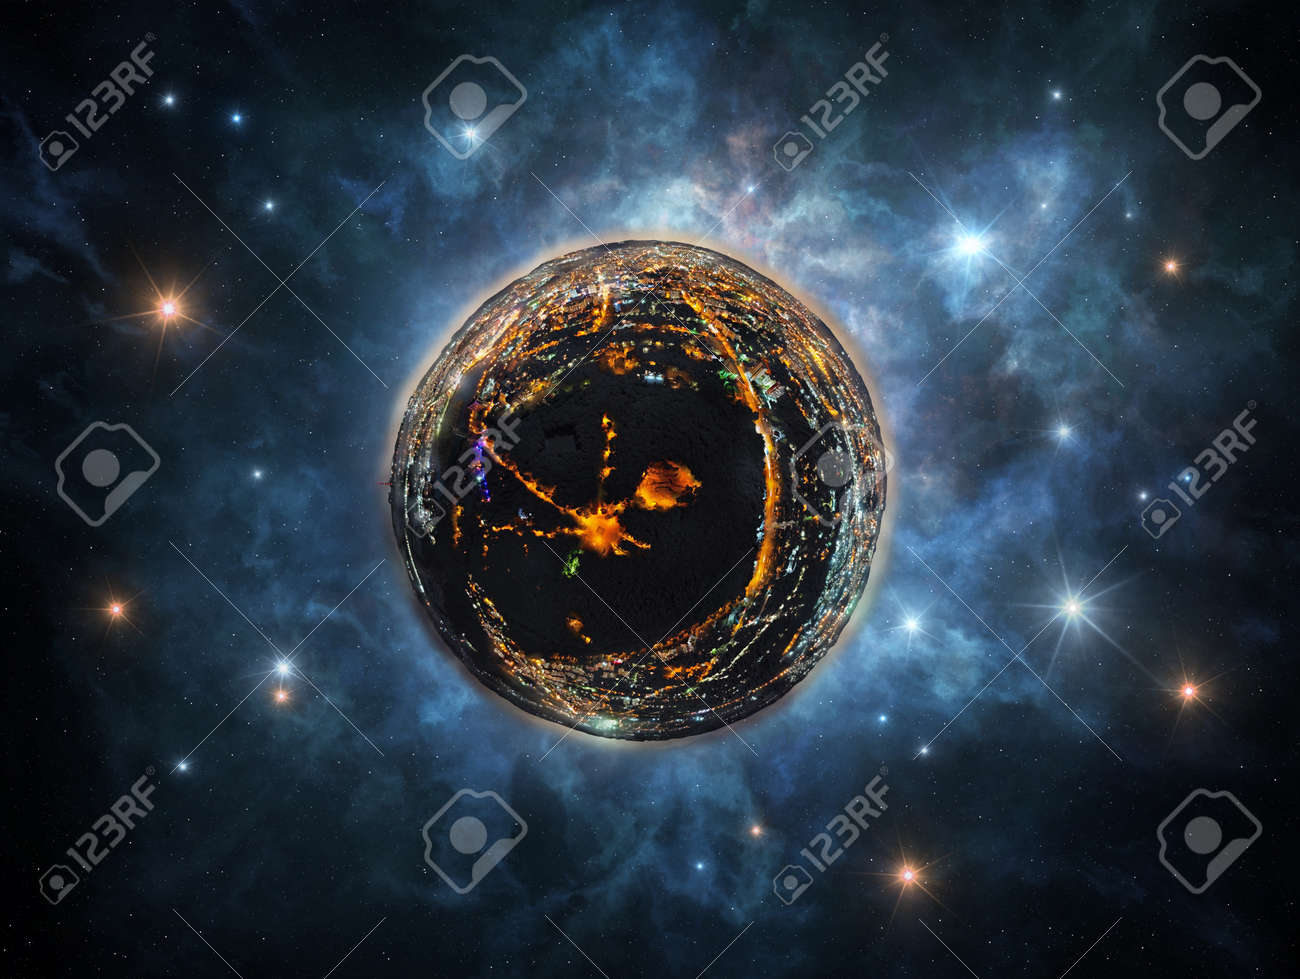 Abstract image of little planet with night city - conceptual image for industries, urban life, real estate, etc. - 111447294